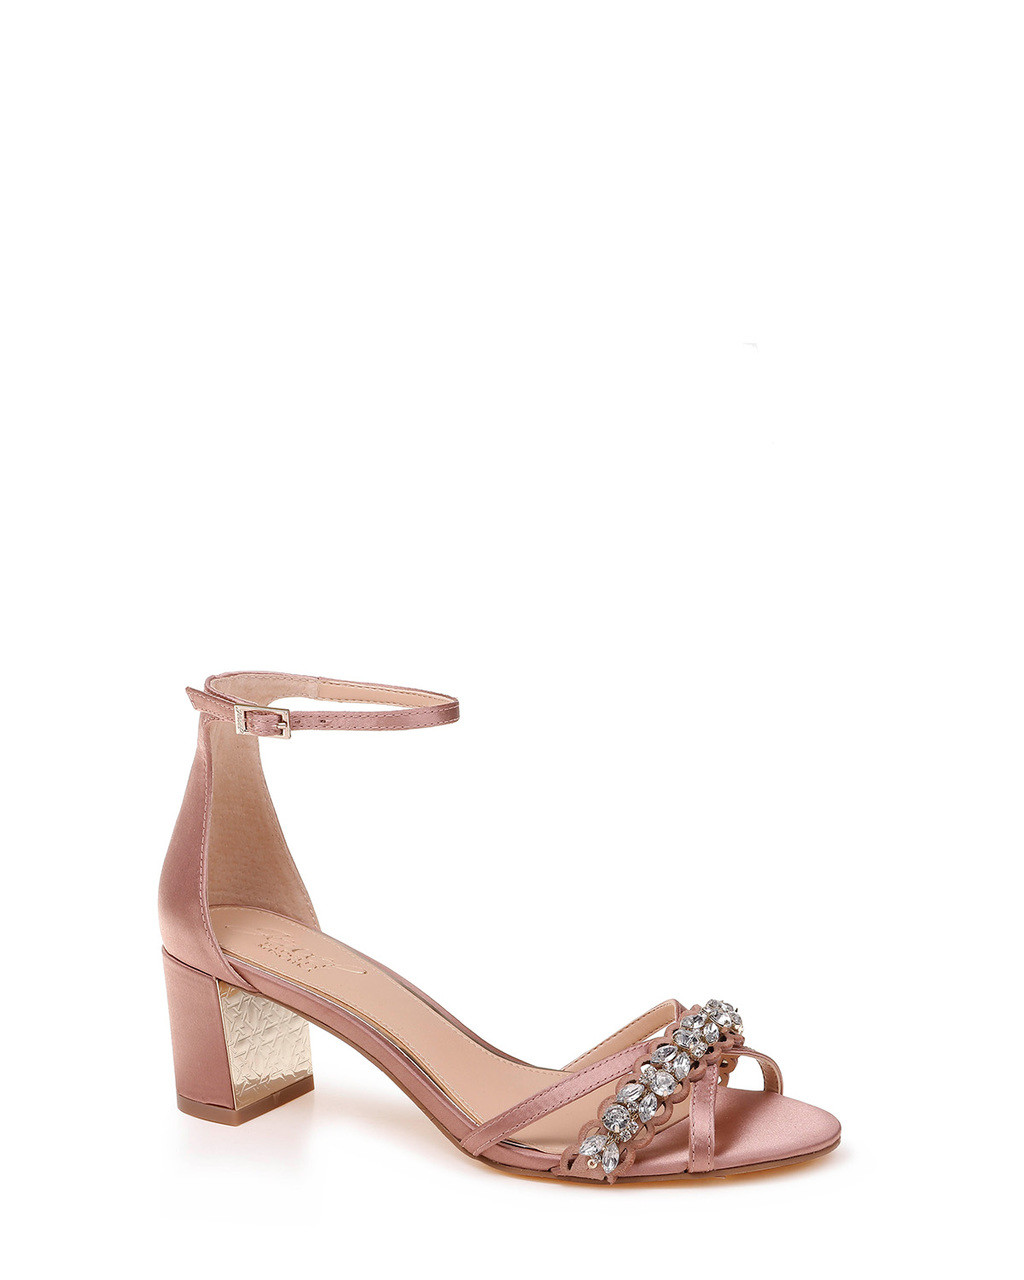 speical offer new york cheapest price Giona Embellished Evening Shoe from Jewel by Badgley Mischka